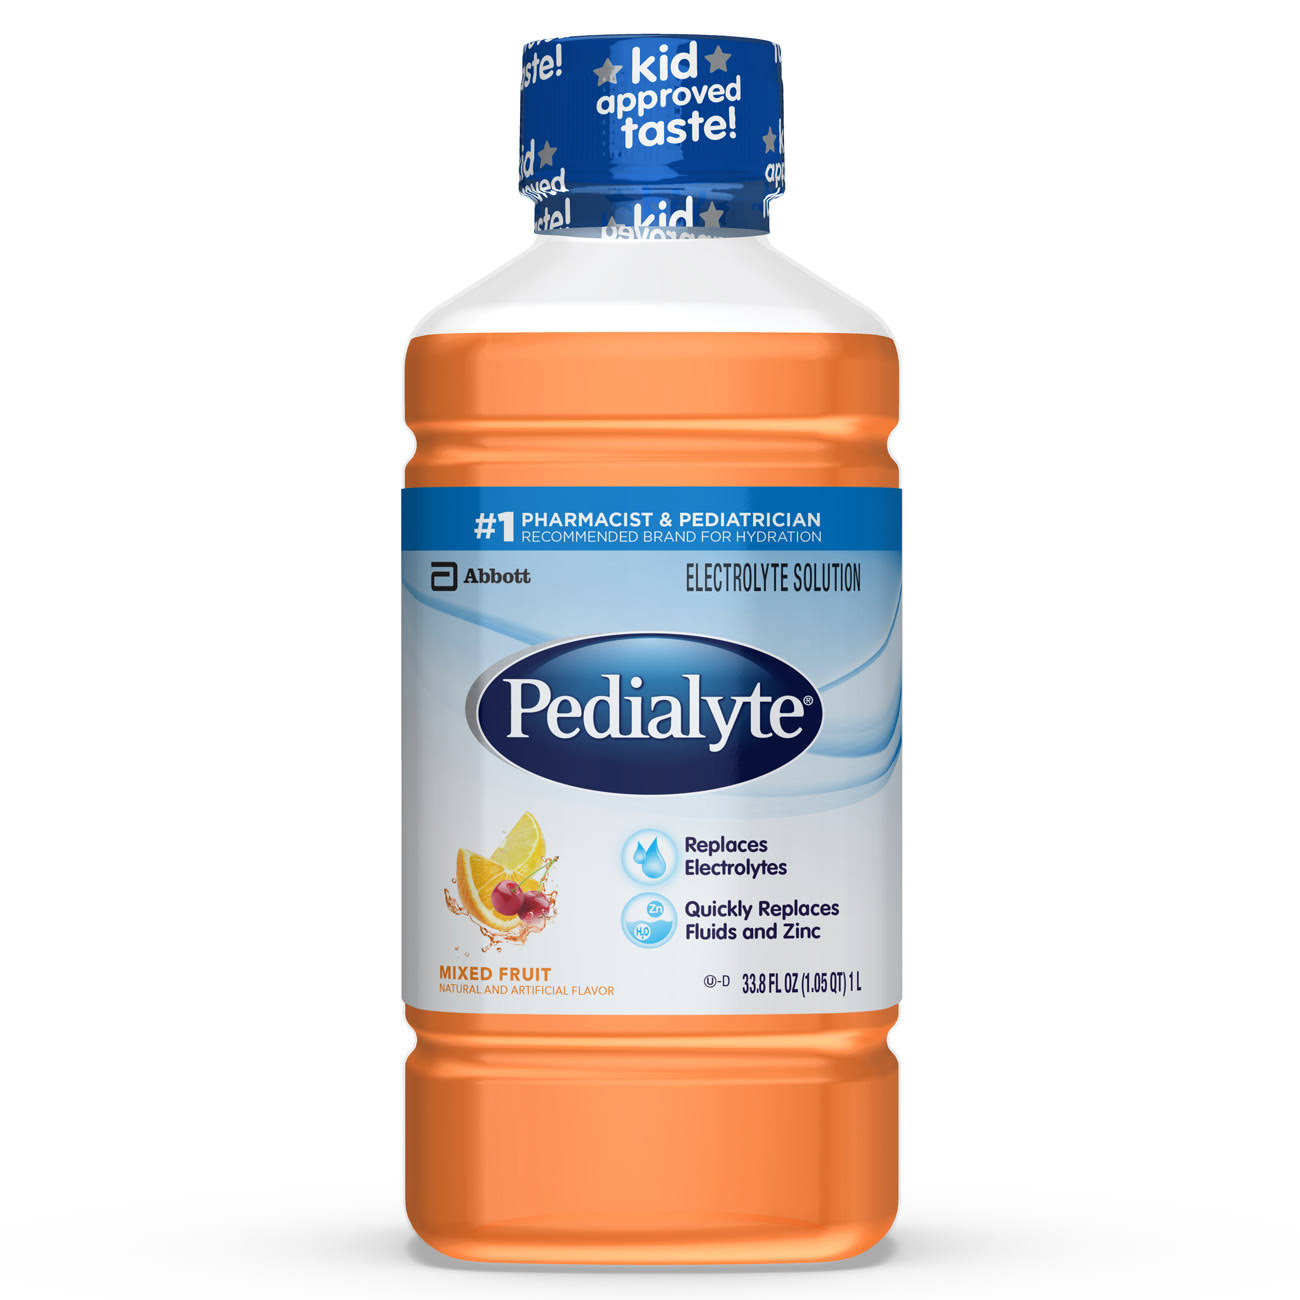 Abbott Pedialyte Electrolyte Solution - 1.1qt, Mixed Fruit